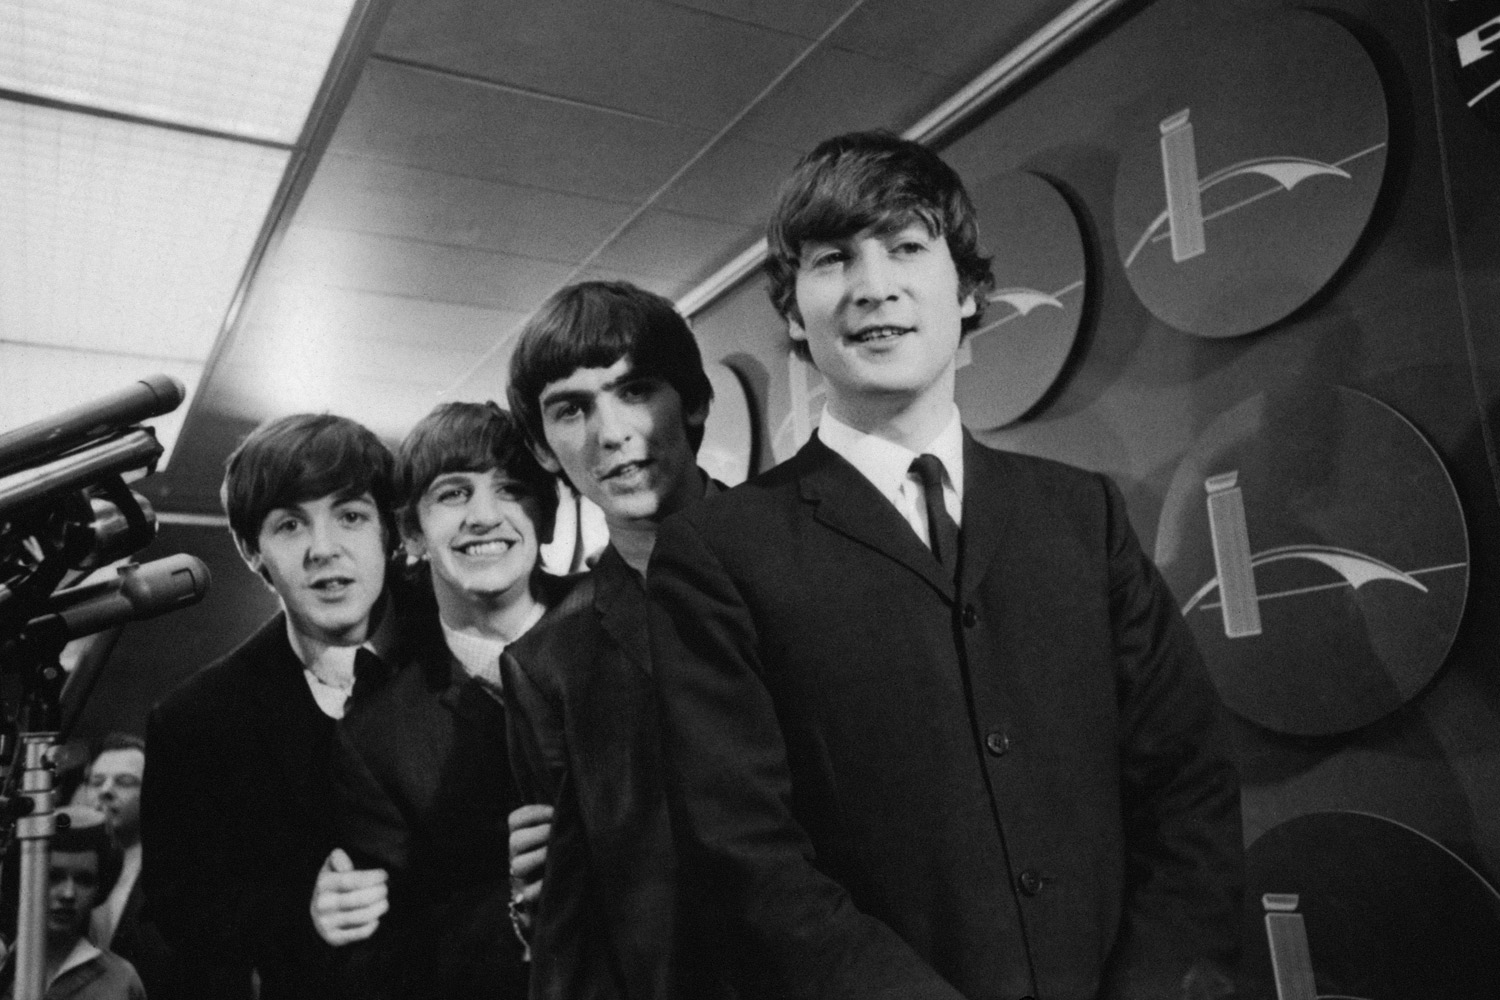 The Beatles after arriving at John F. Kennedy International Airport, February 7, 1964. From left: Paul McCartney, Ringo Starr, George Harrison and John Lennon